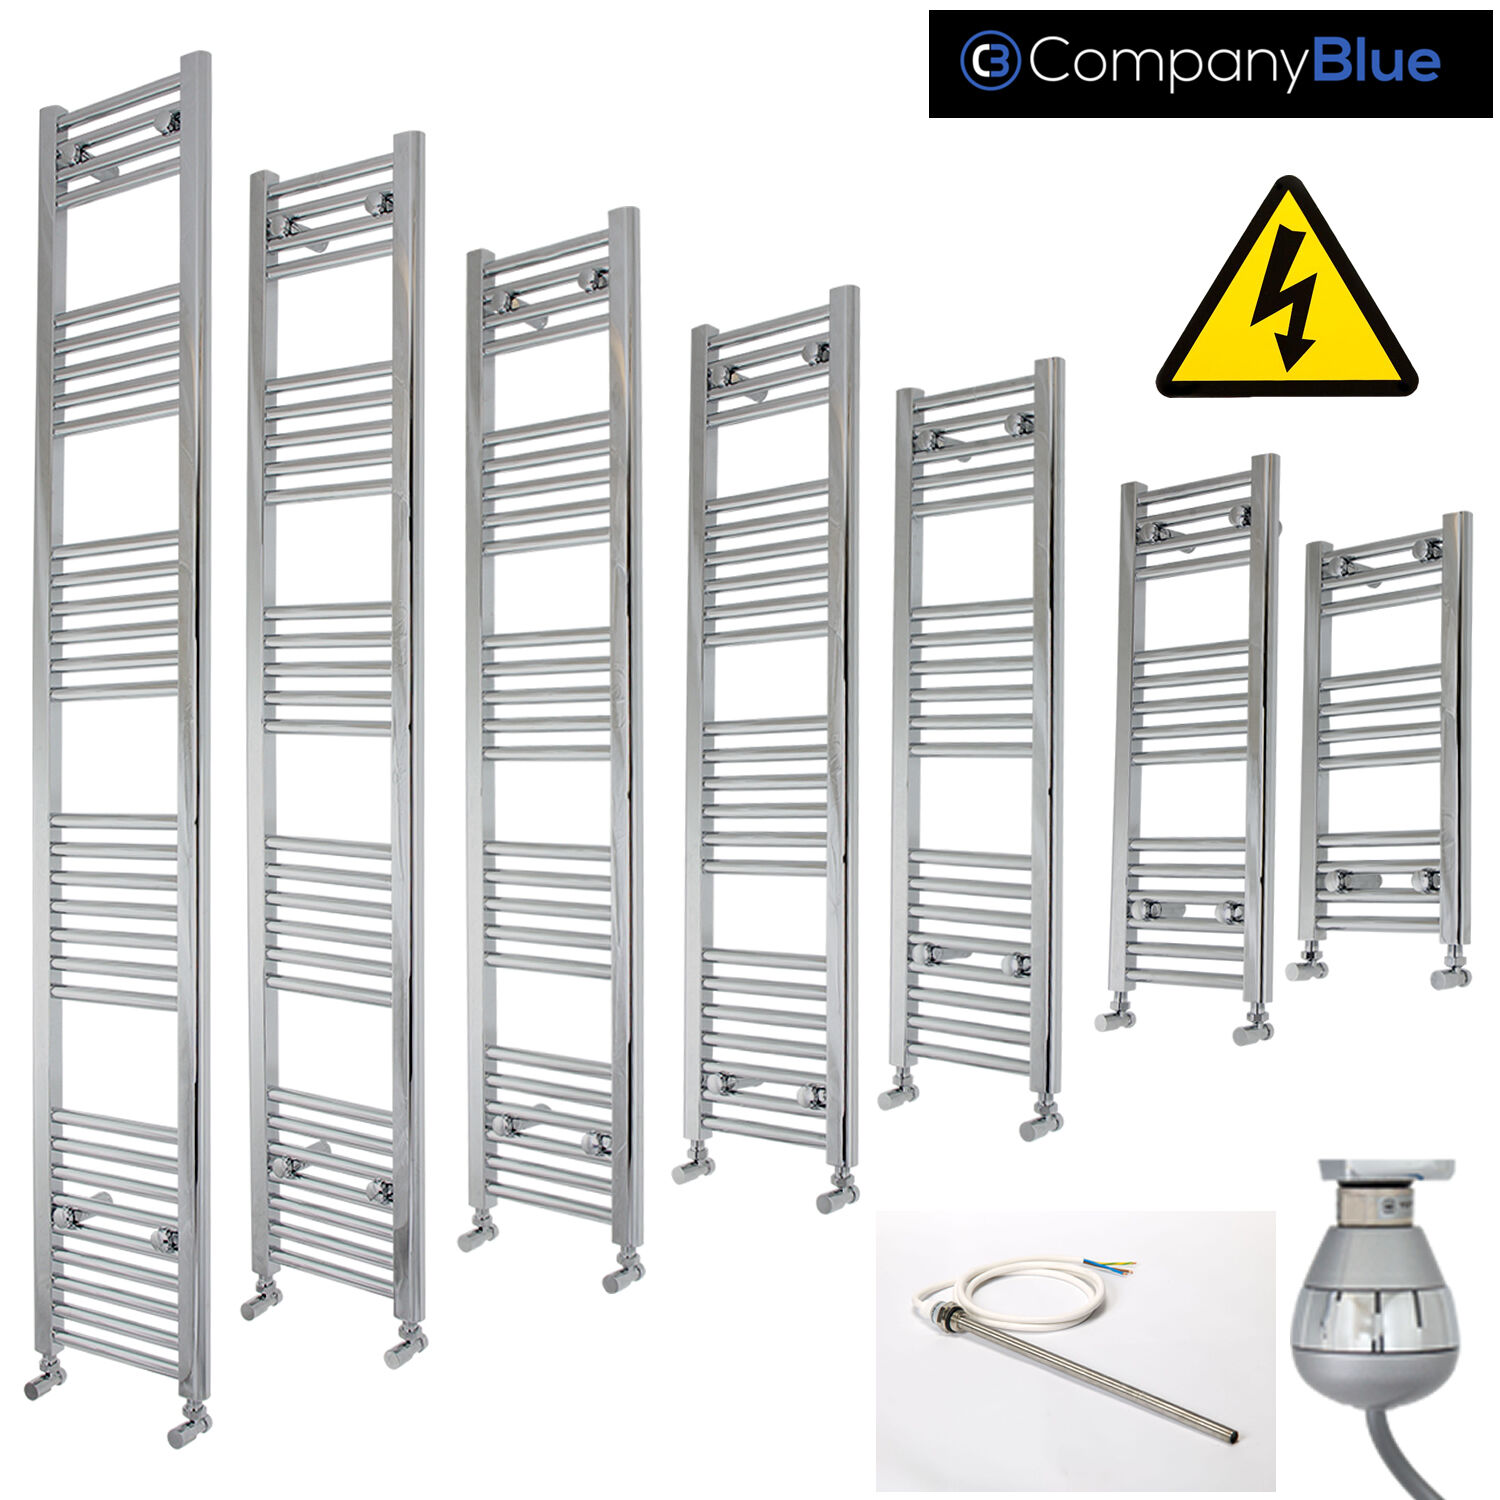 200mm Wide Electric Chrome Heated Towel Rail Radiator Straight Ladder Prefilled